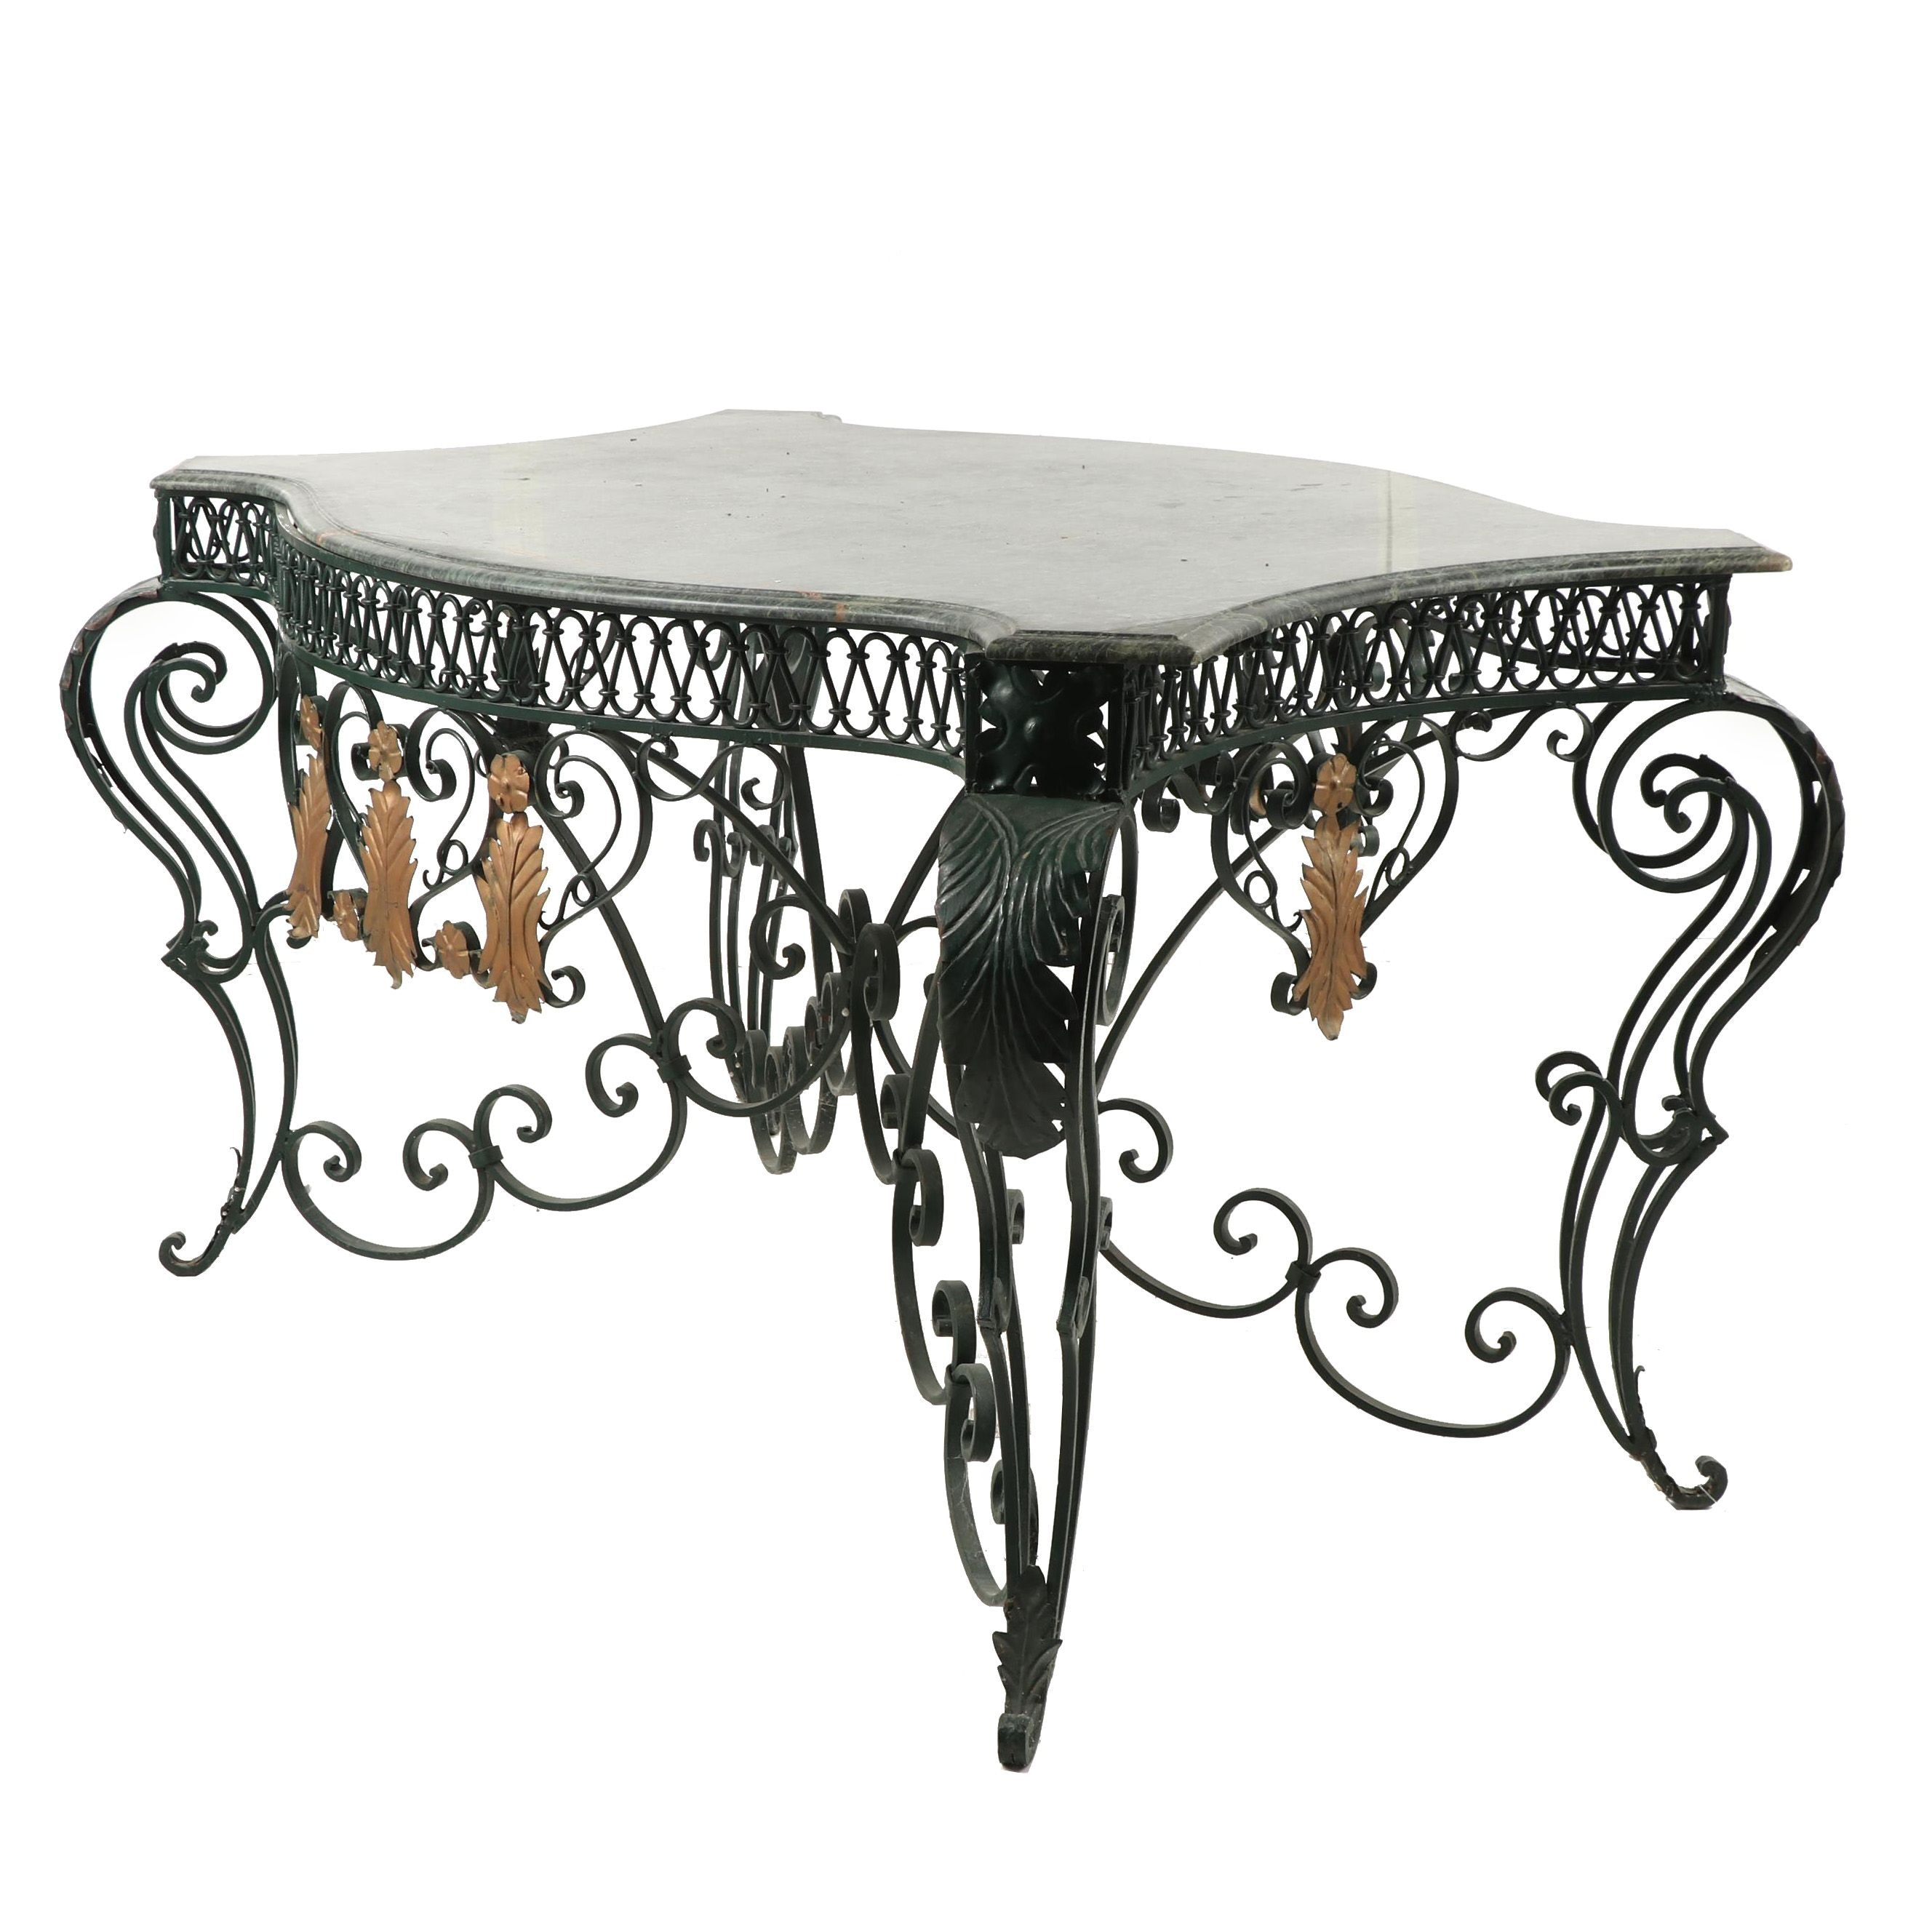 Contemporary French Style Green Wrought Iron Center Table with Marble Top